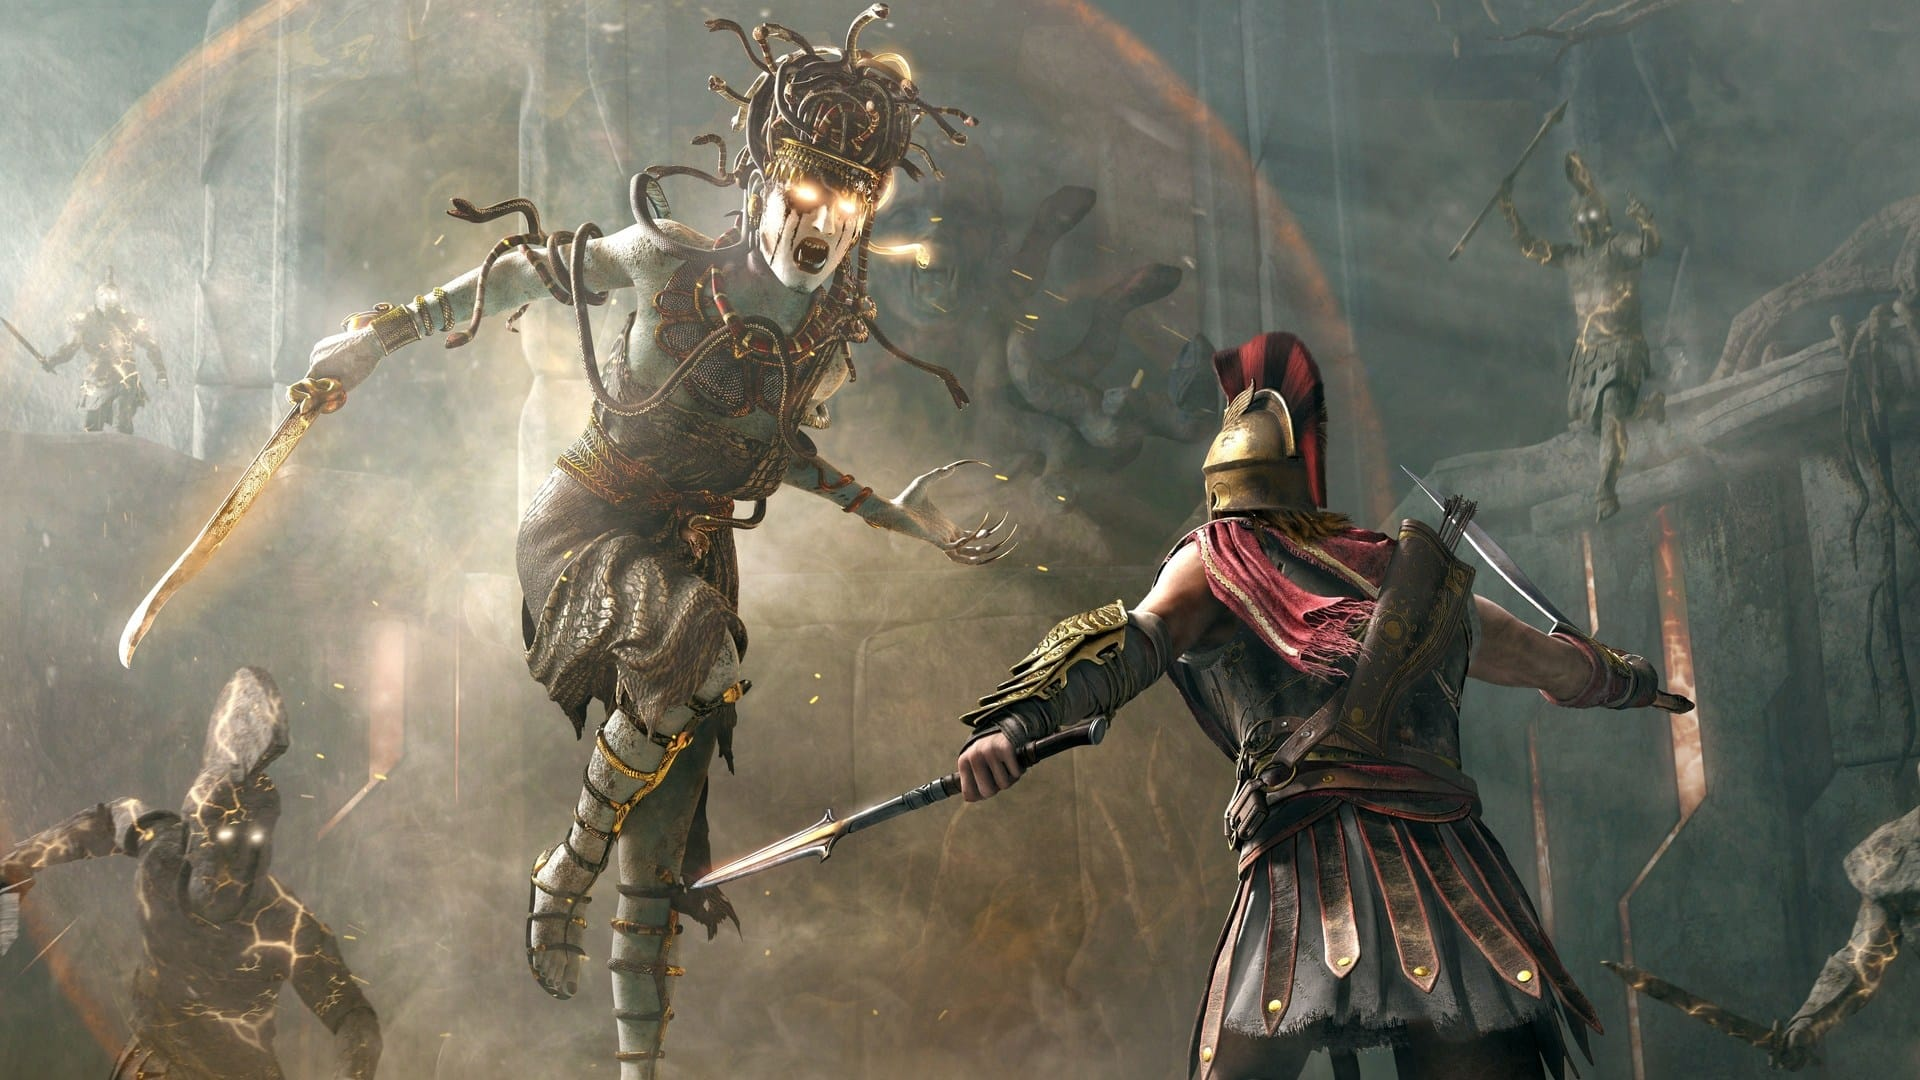 Assassin's Creed Is The X-Files of Video Games, and It Needs to Stop - The Escapist